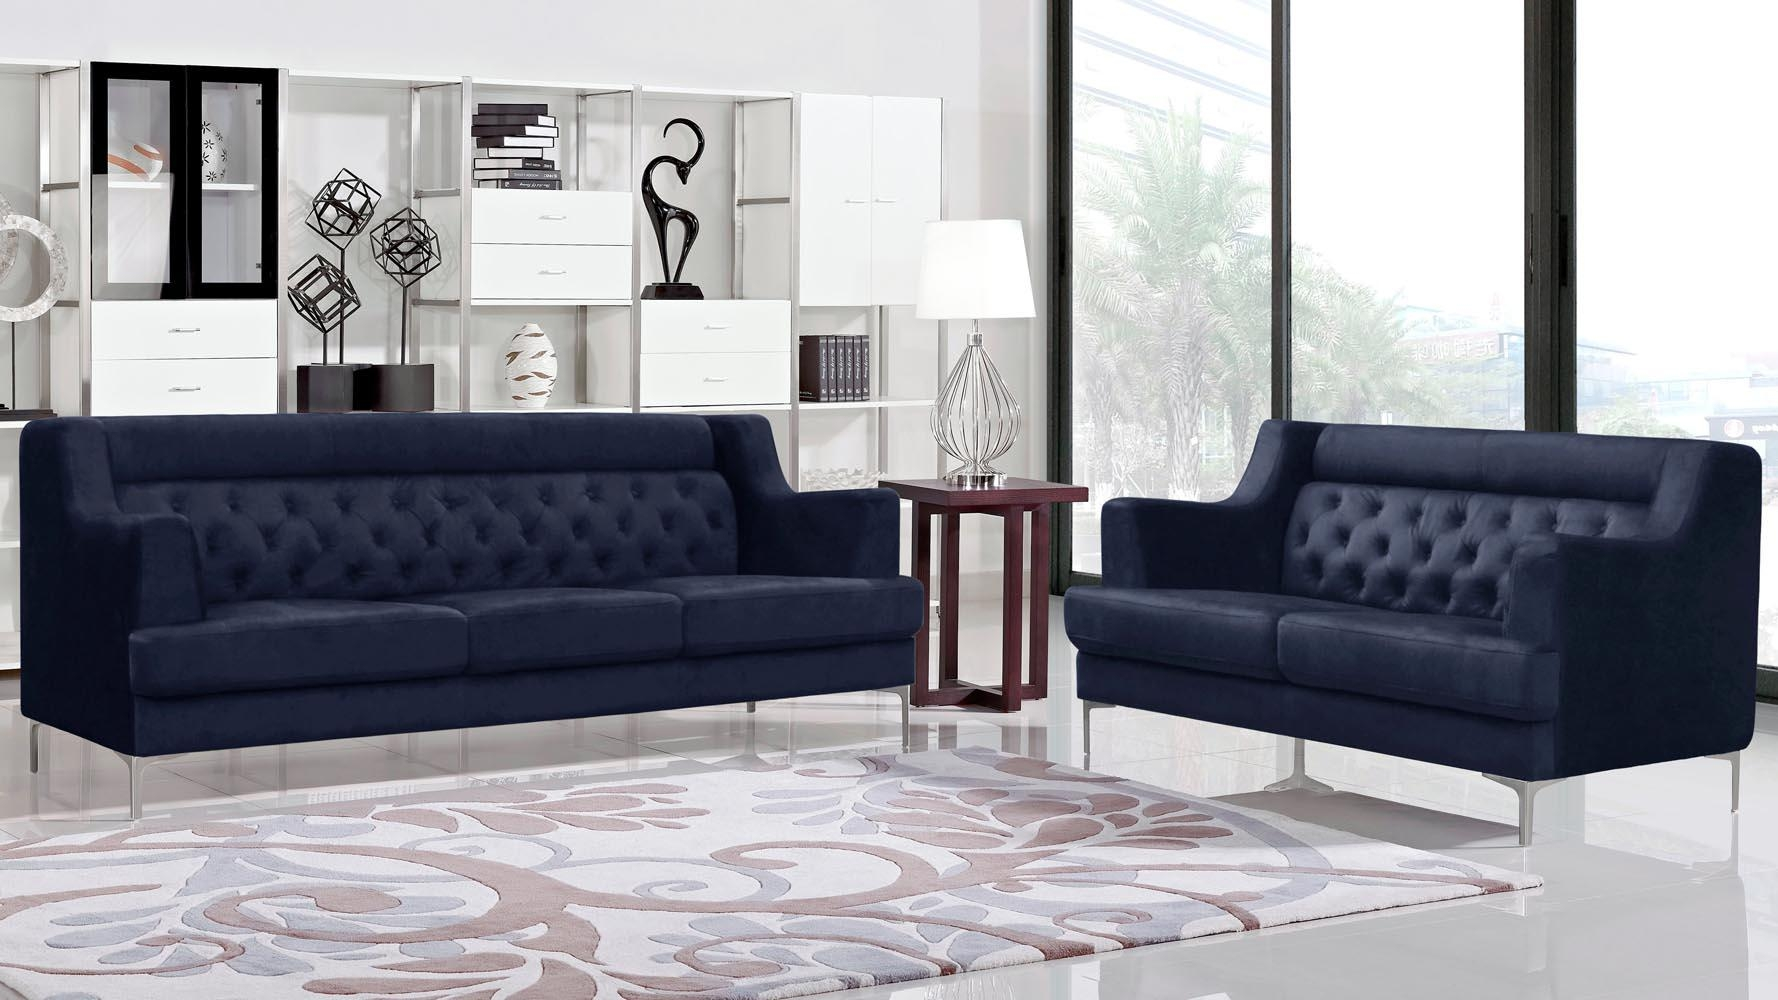 Zara Fabric Tufted Sofa With Chrome Legs – Navy Blue | Zuri Furniture Within Blue Tufted Sofas (View 3 of 22)